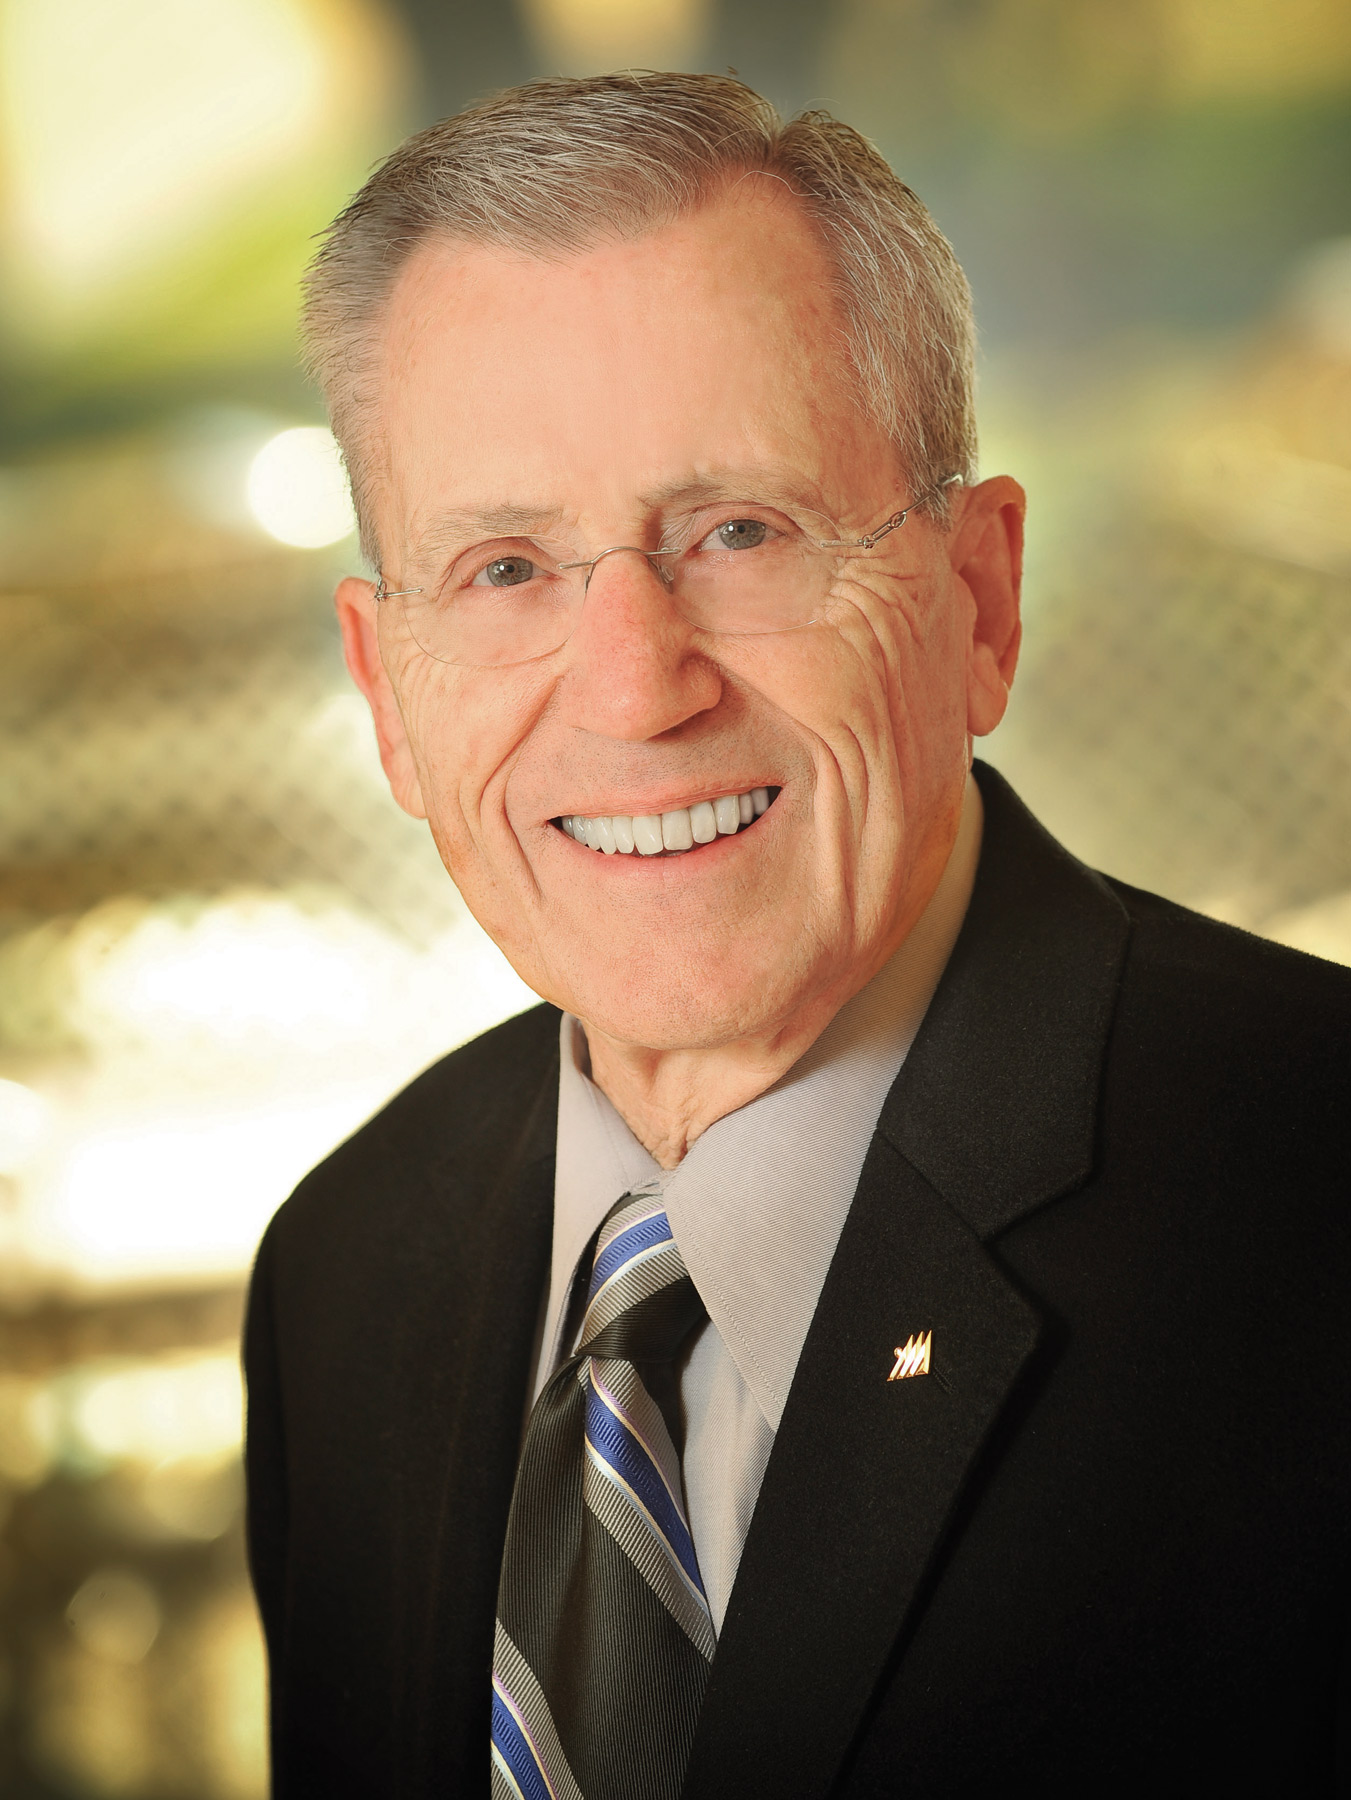 Meet Ernst & Young's Entrepreneur of the Year Contenders - D